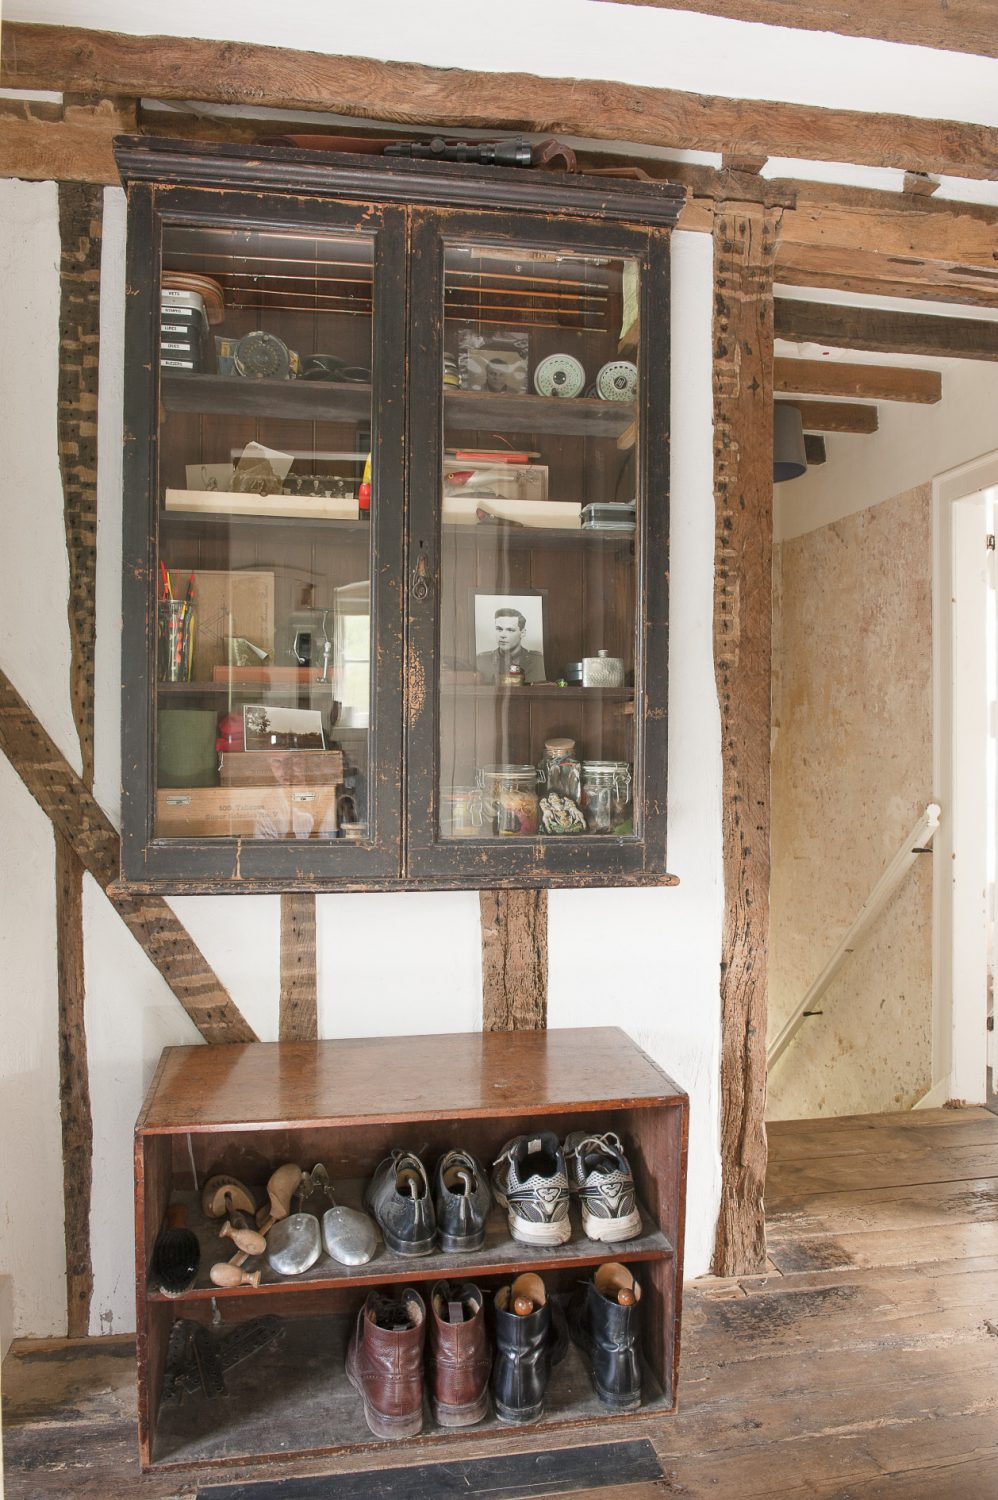 On the landing is a venerable glass-fronted cabinet displaying Nick's old fly fishing kit. The walls of the staircase up through the centre of the property are of attractive accidentally distressed plasterwork